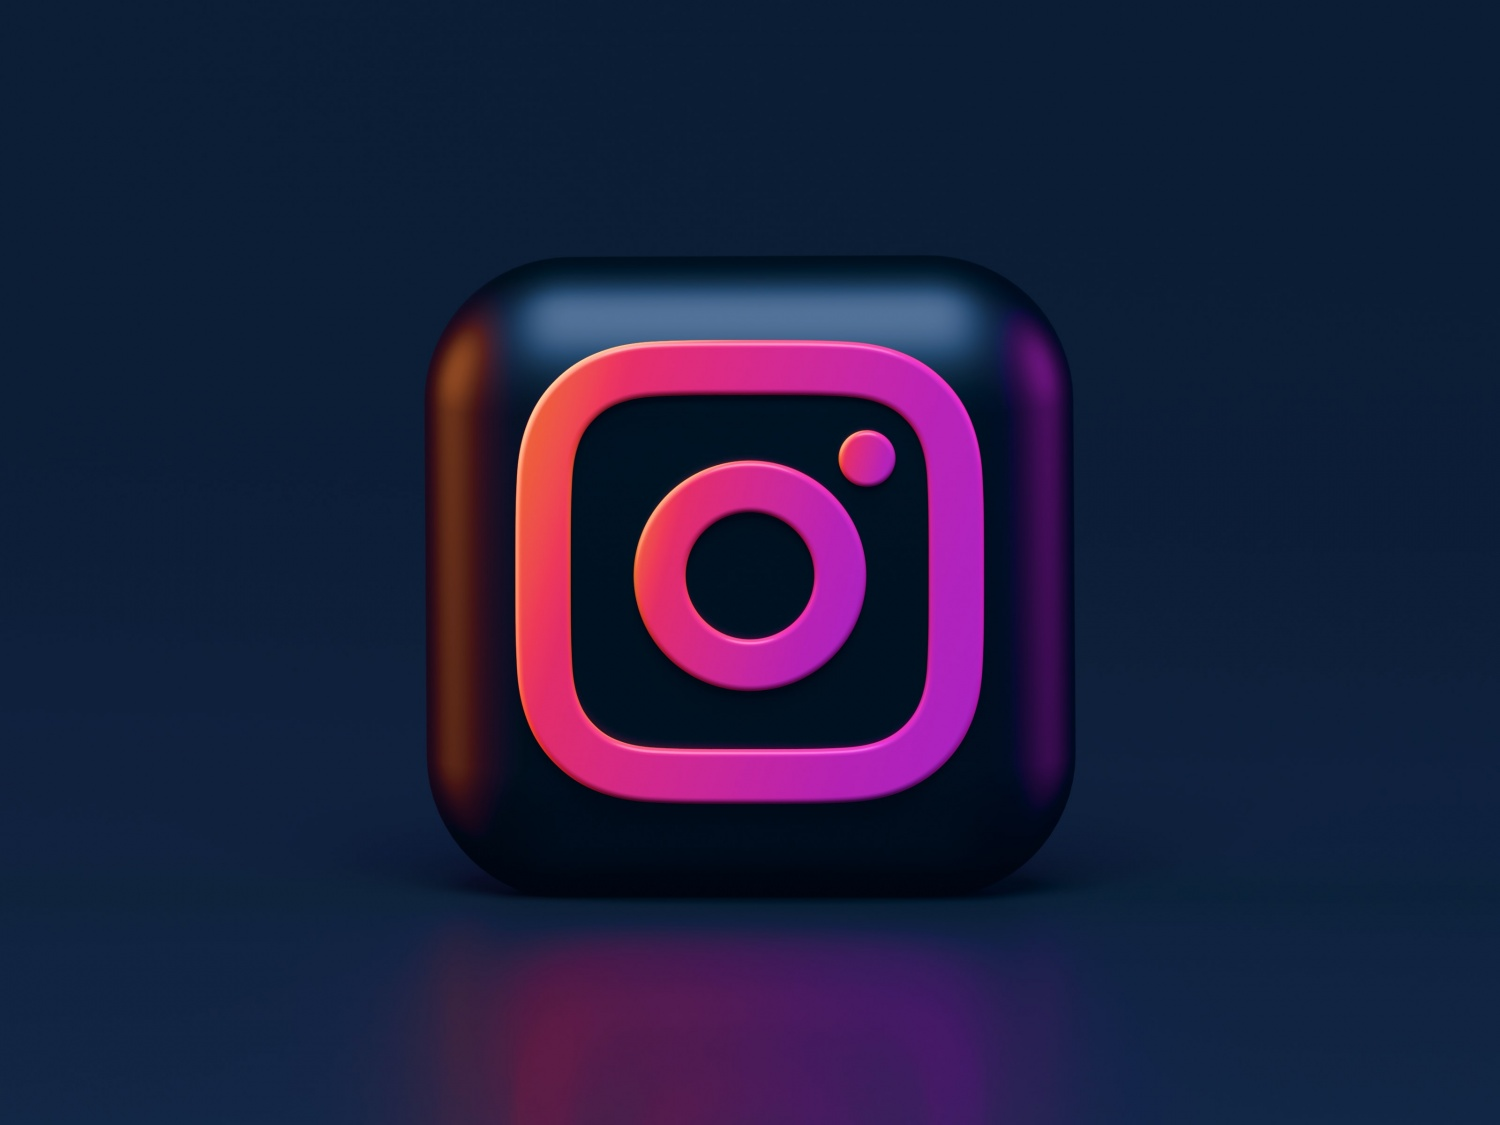 Instagram Describes Teens as 'Pipeline' | Company Concerned About Losing Teenage Users